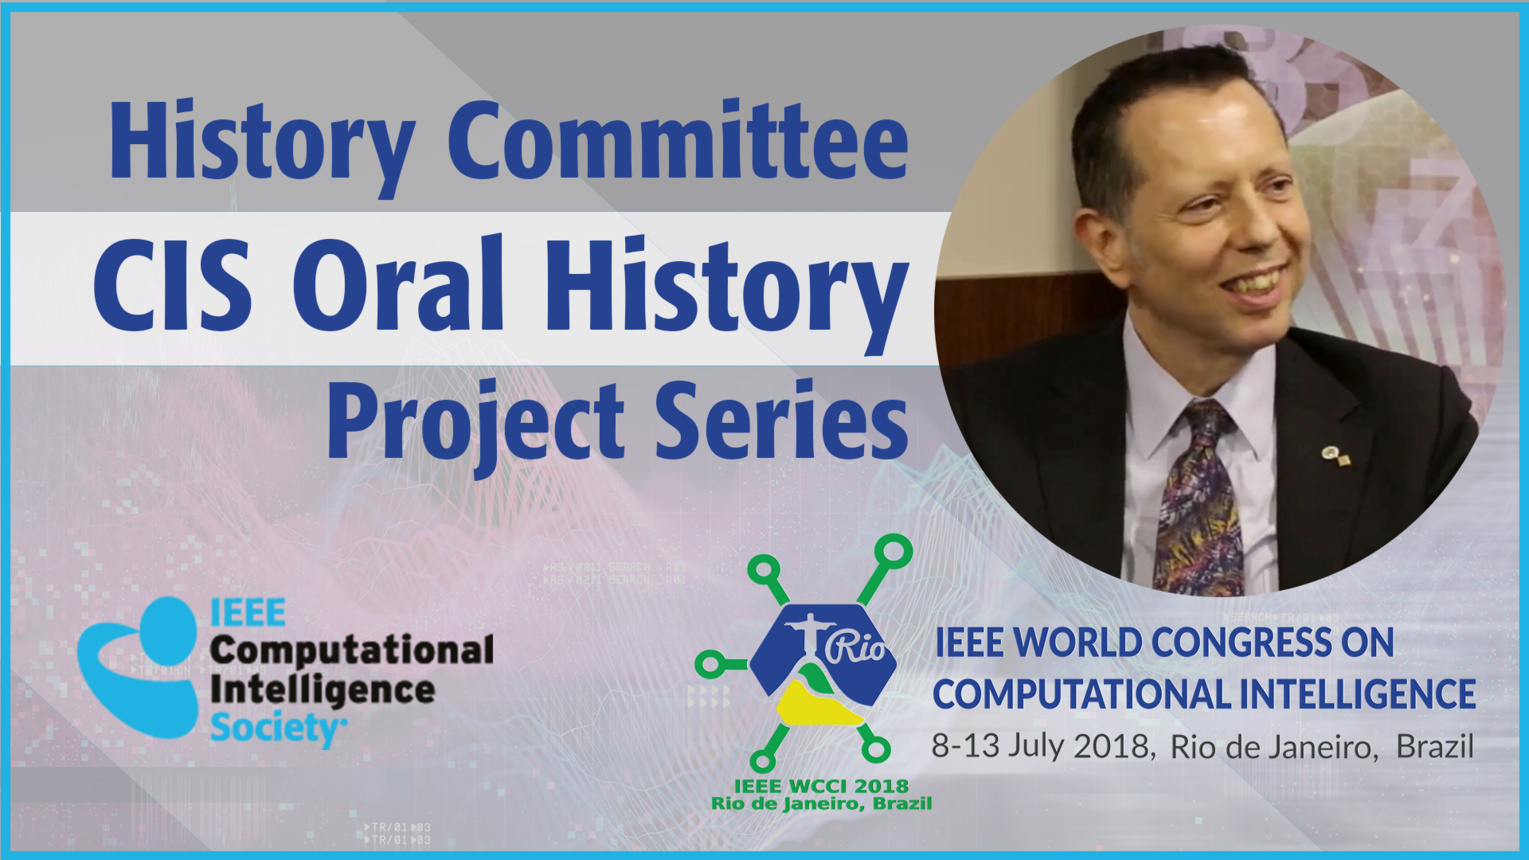 Vincenzo Piuri: History Committee CIS Oral History Project Series